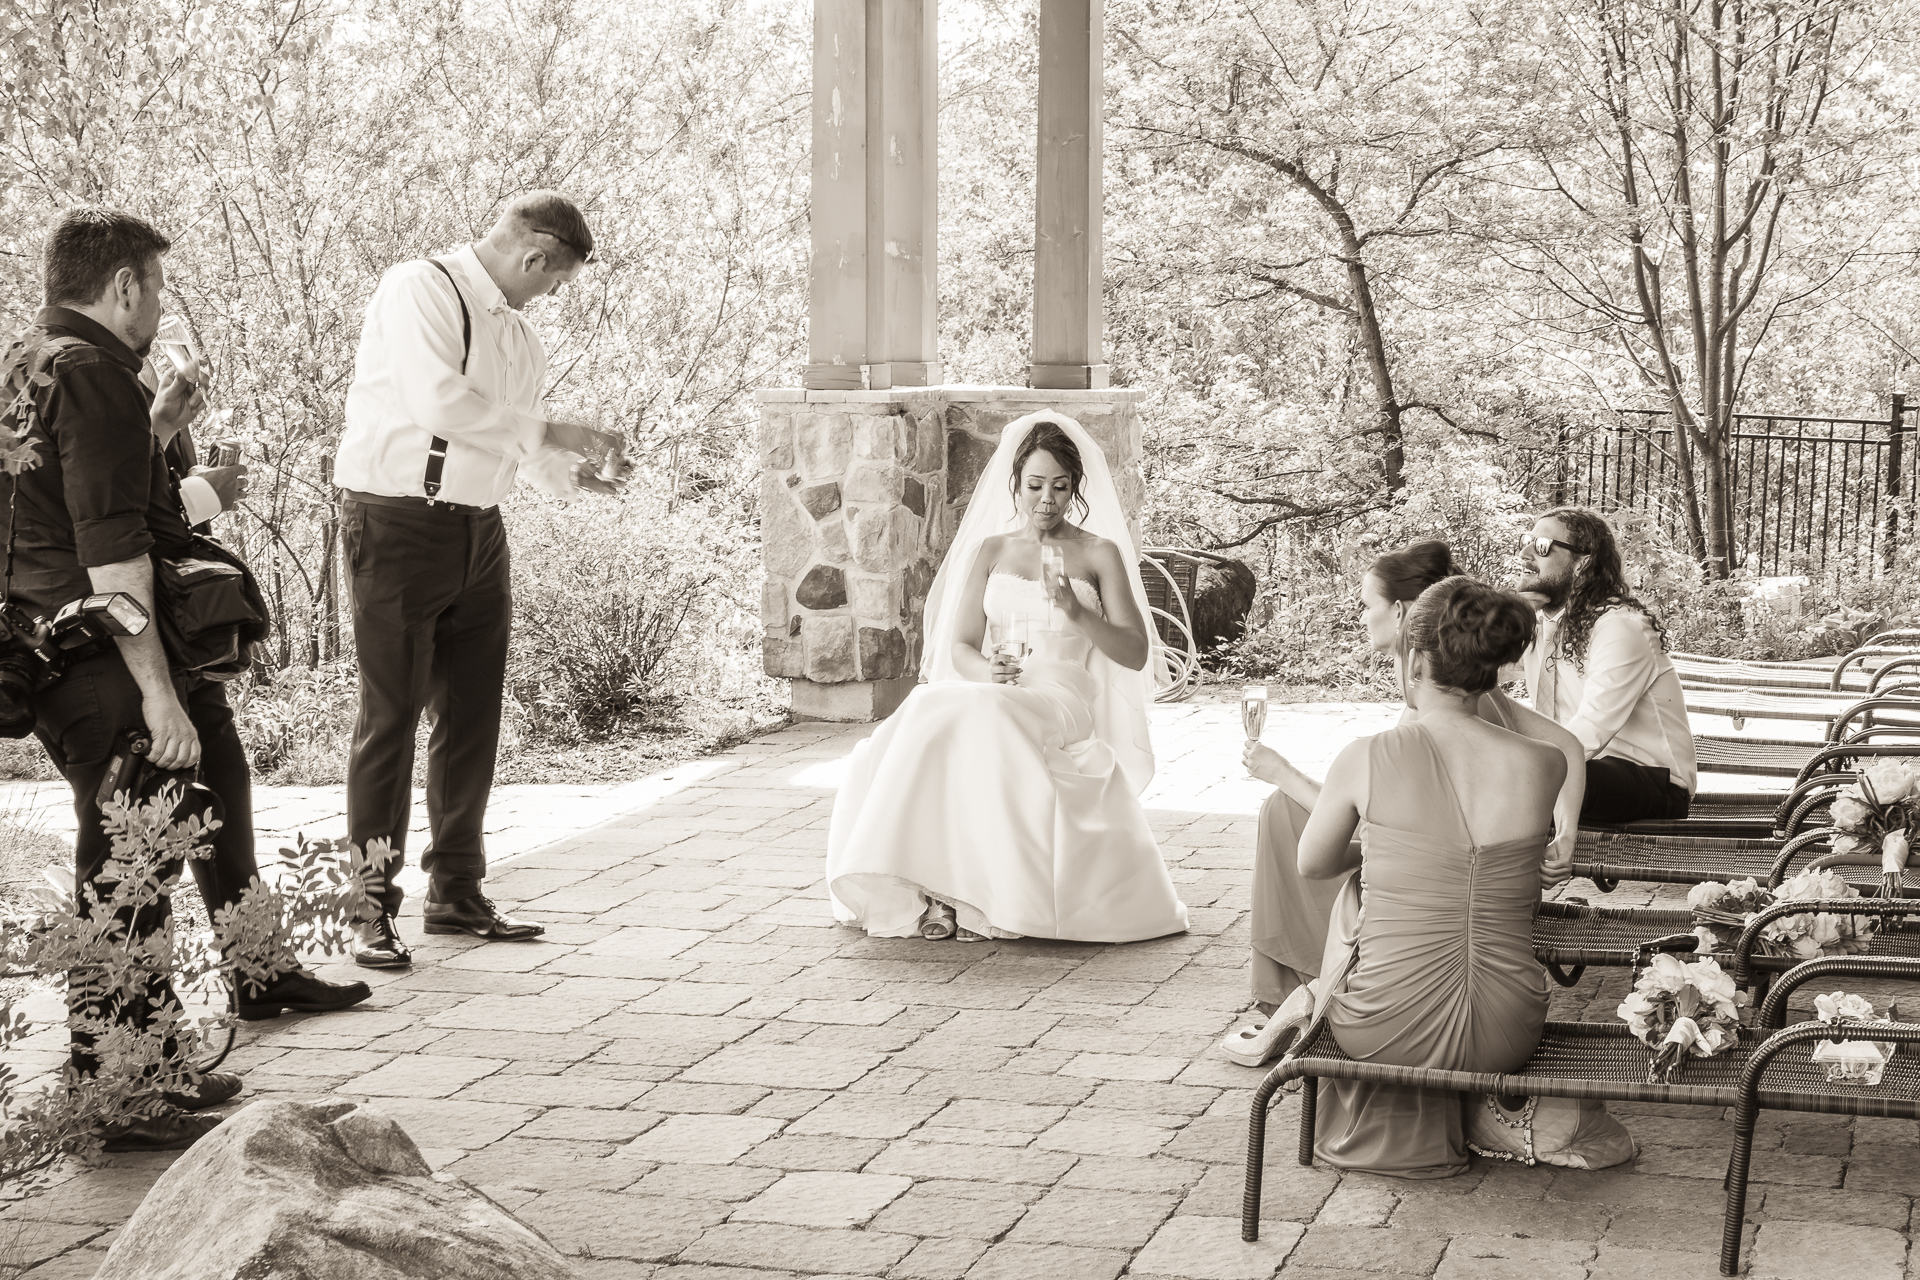 Wedding photography by Nat Lapointe